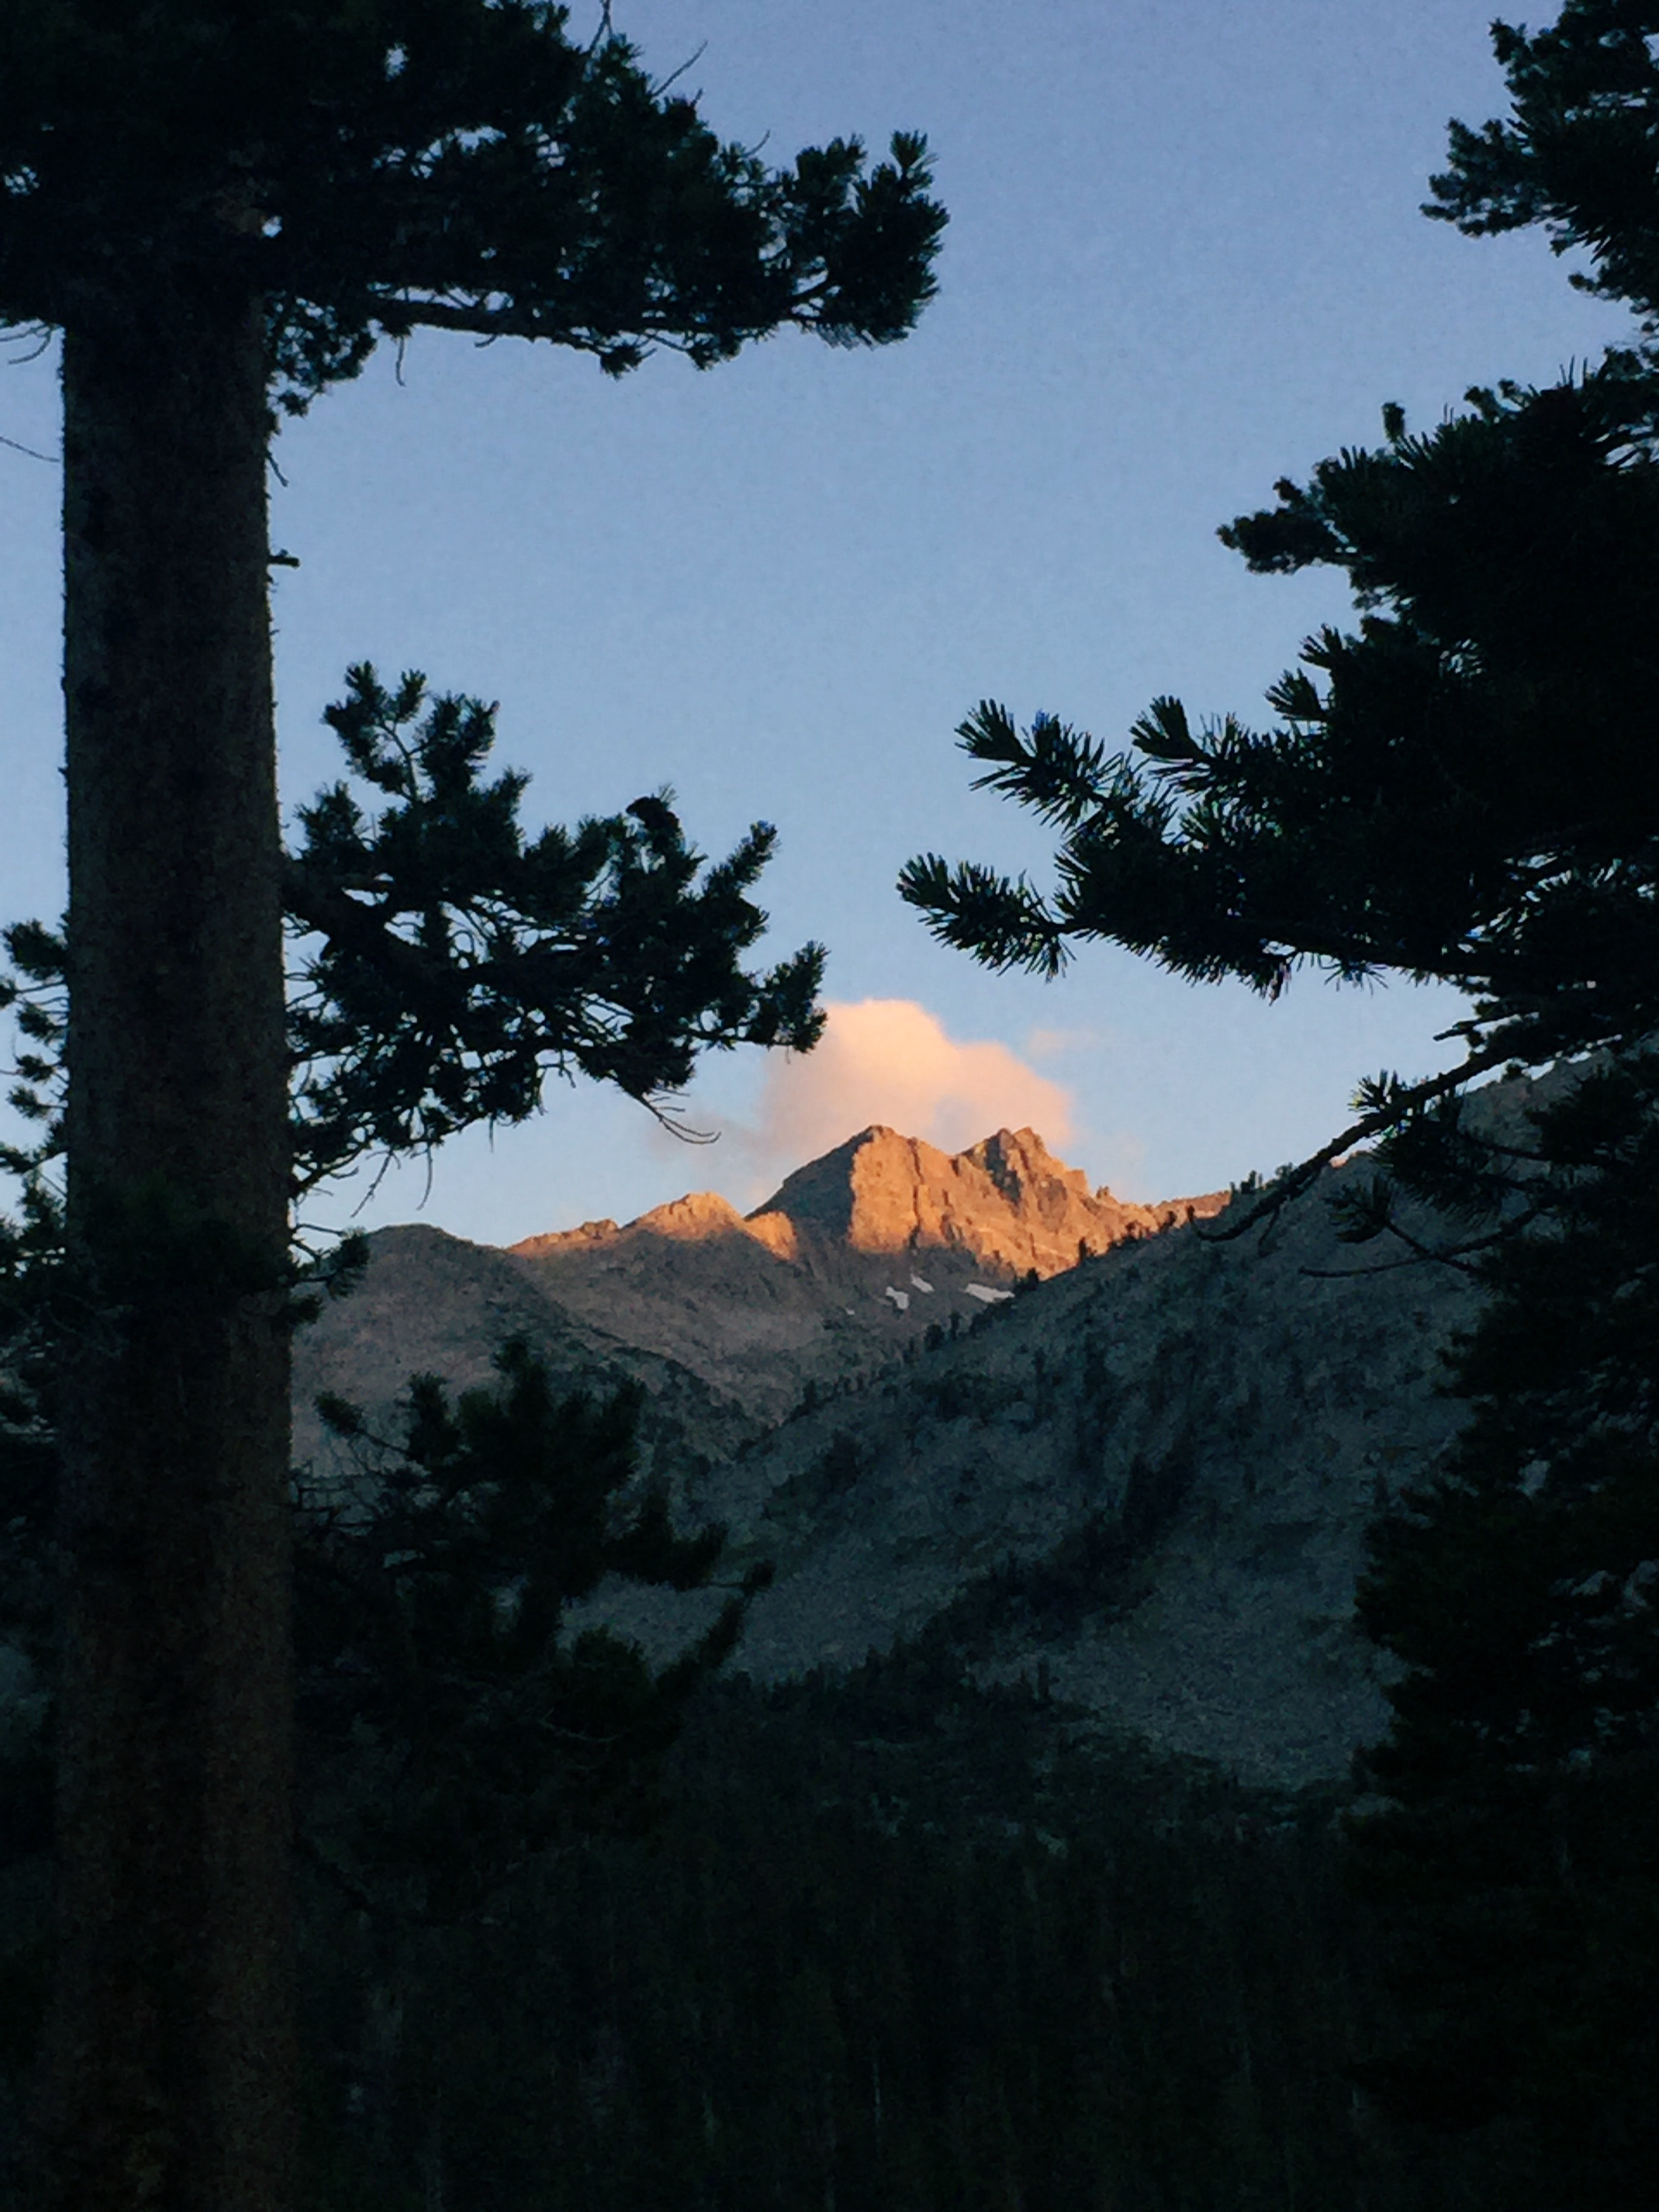 First night's alpenglow.